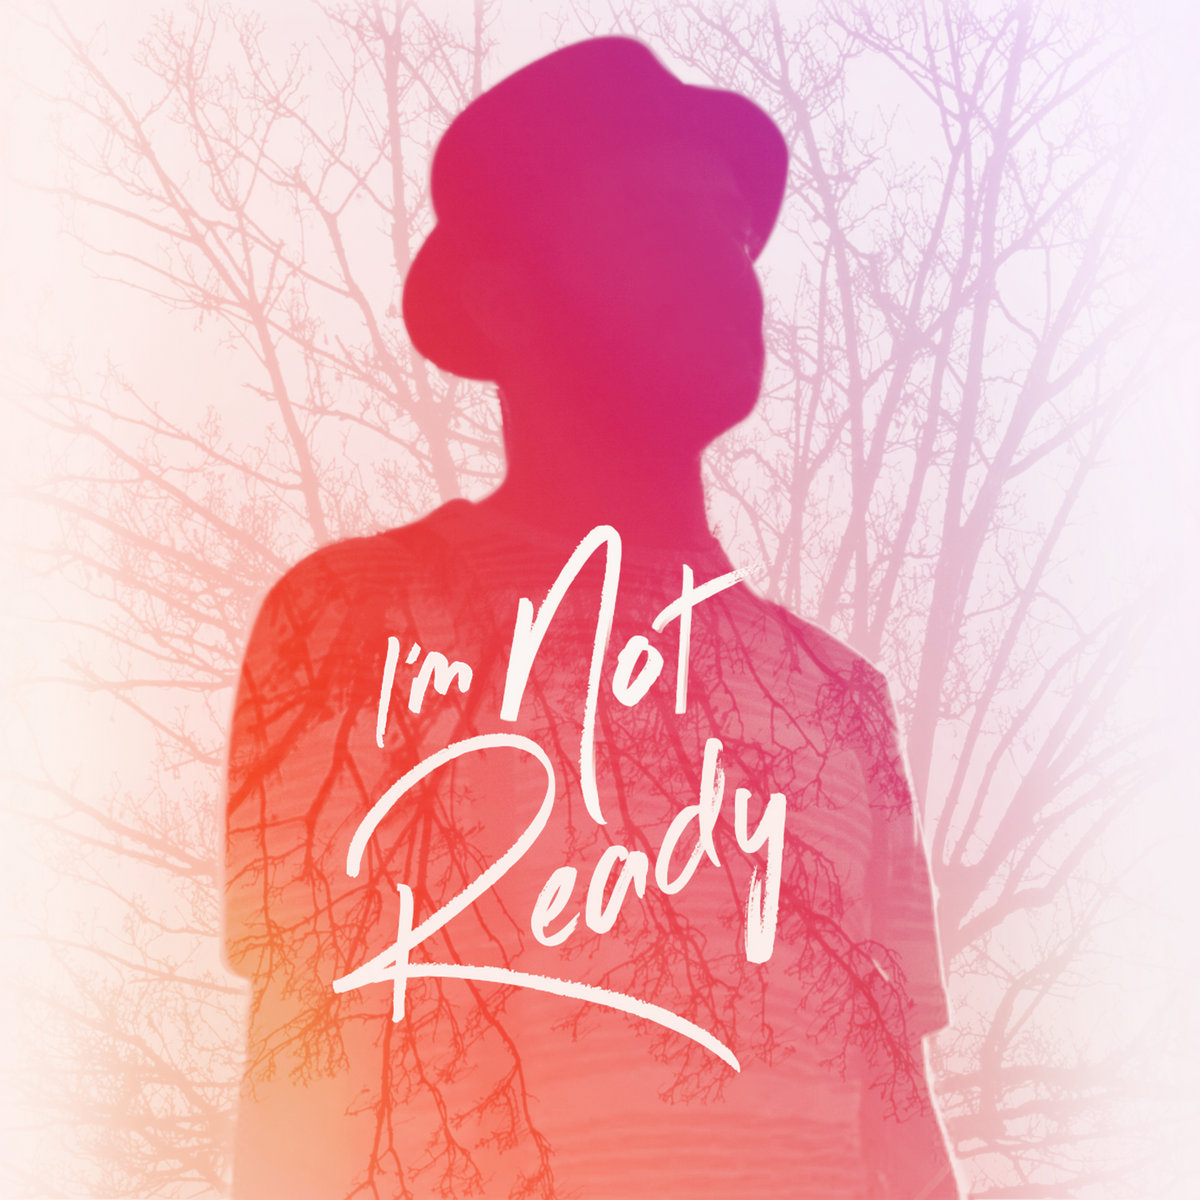 I'm Not Ready by Azz